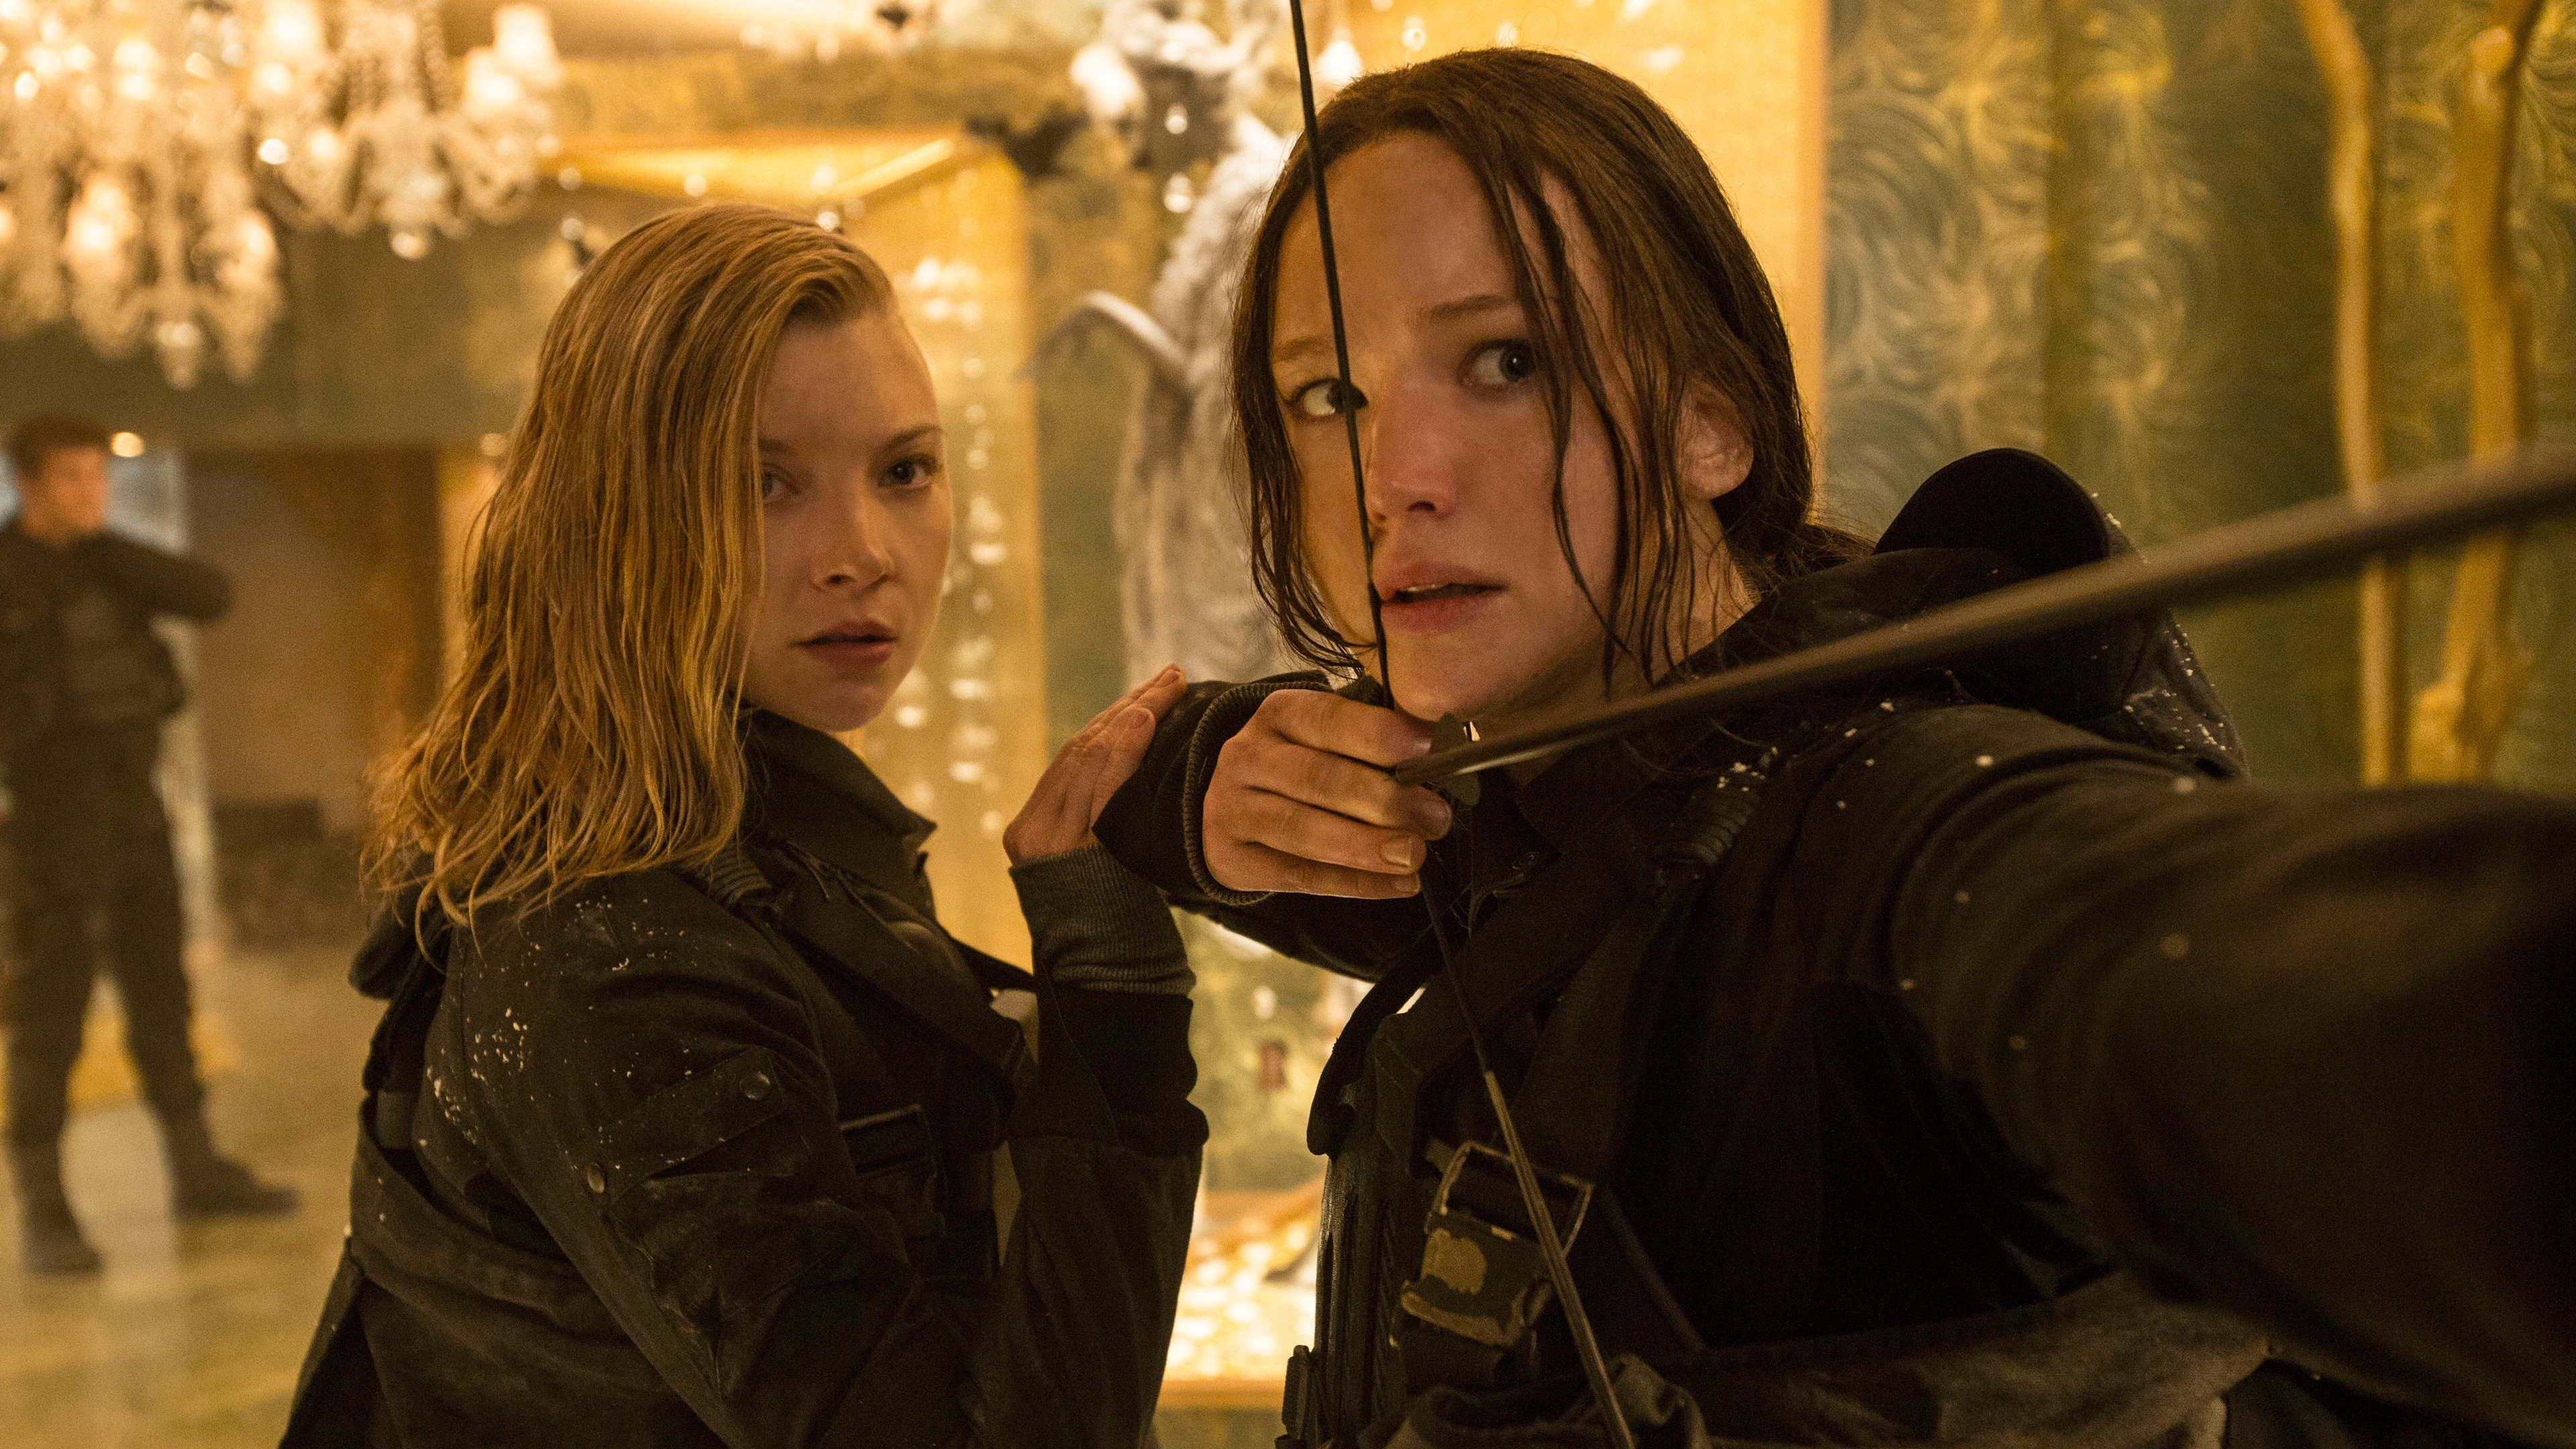 The Hunger Games: Mockingjay Part 2 (2015) | My Filmviews